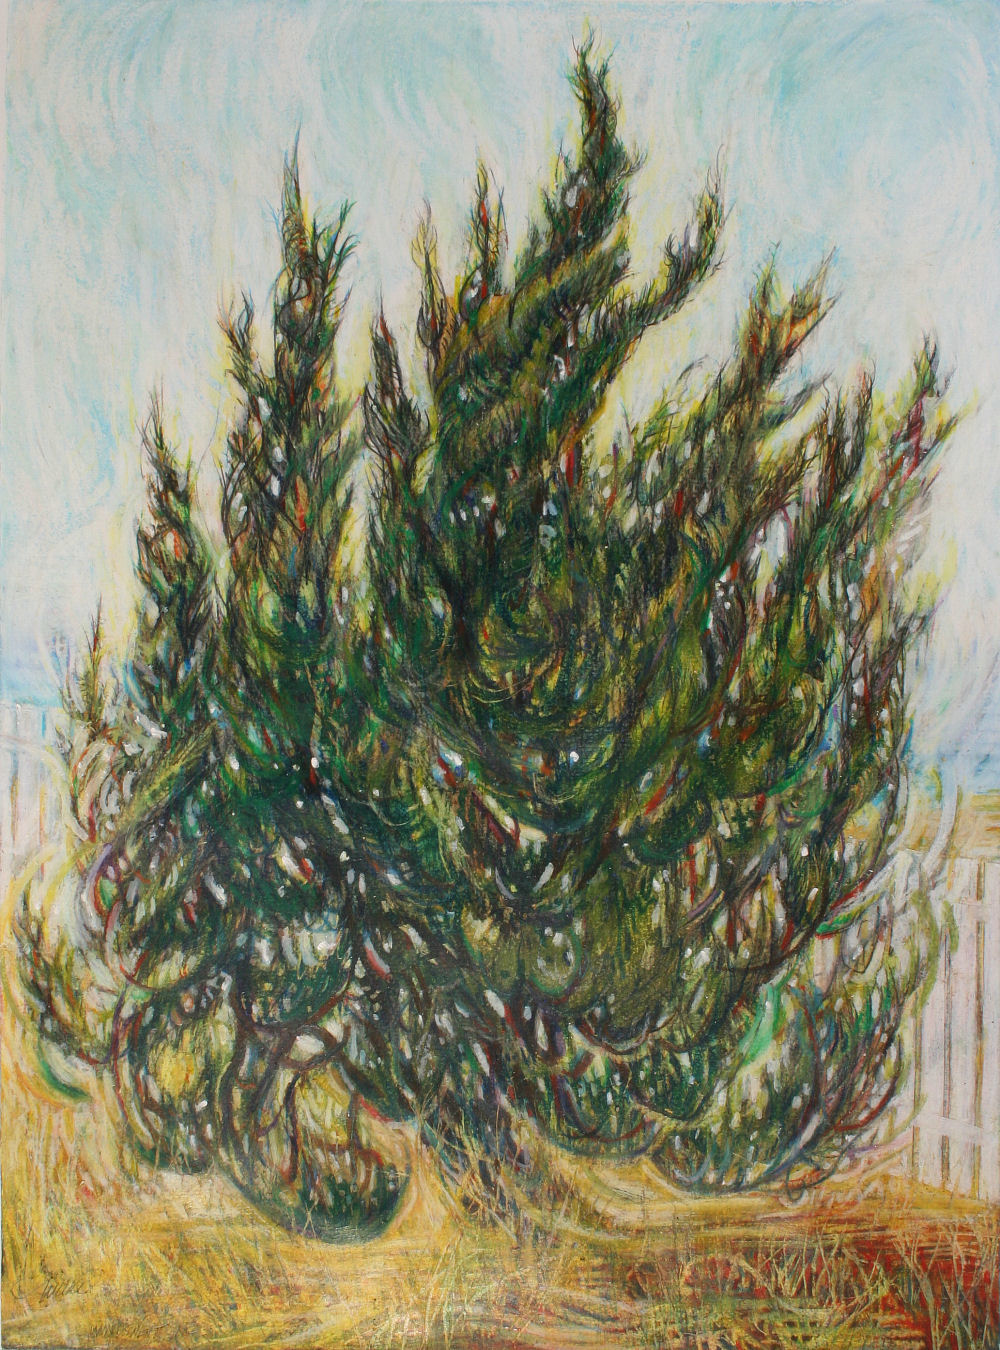 Windswept Cypress in North Carolina, 24H x 18W inches oil pastels and colored pencils on paper